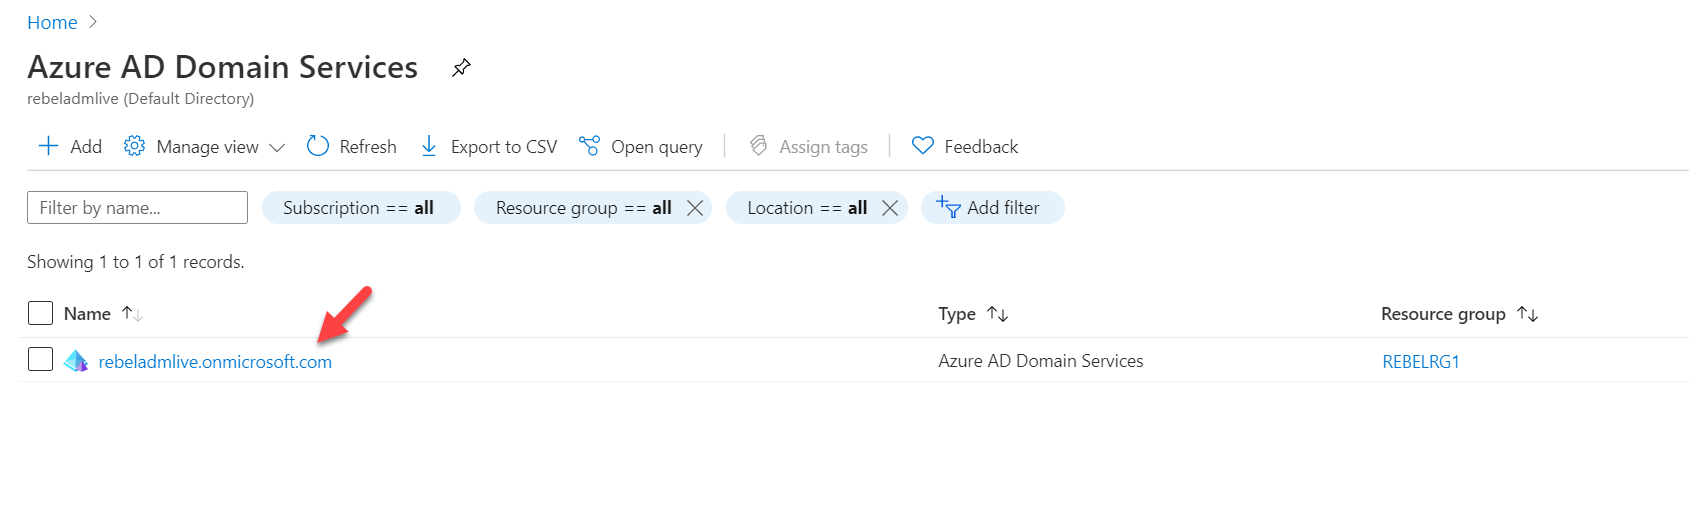 Azure Active Directory Domain Services managed domain list